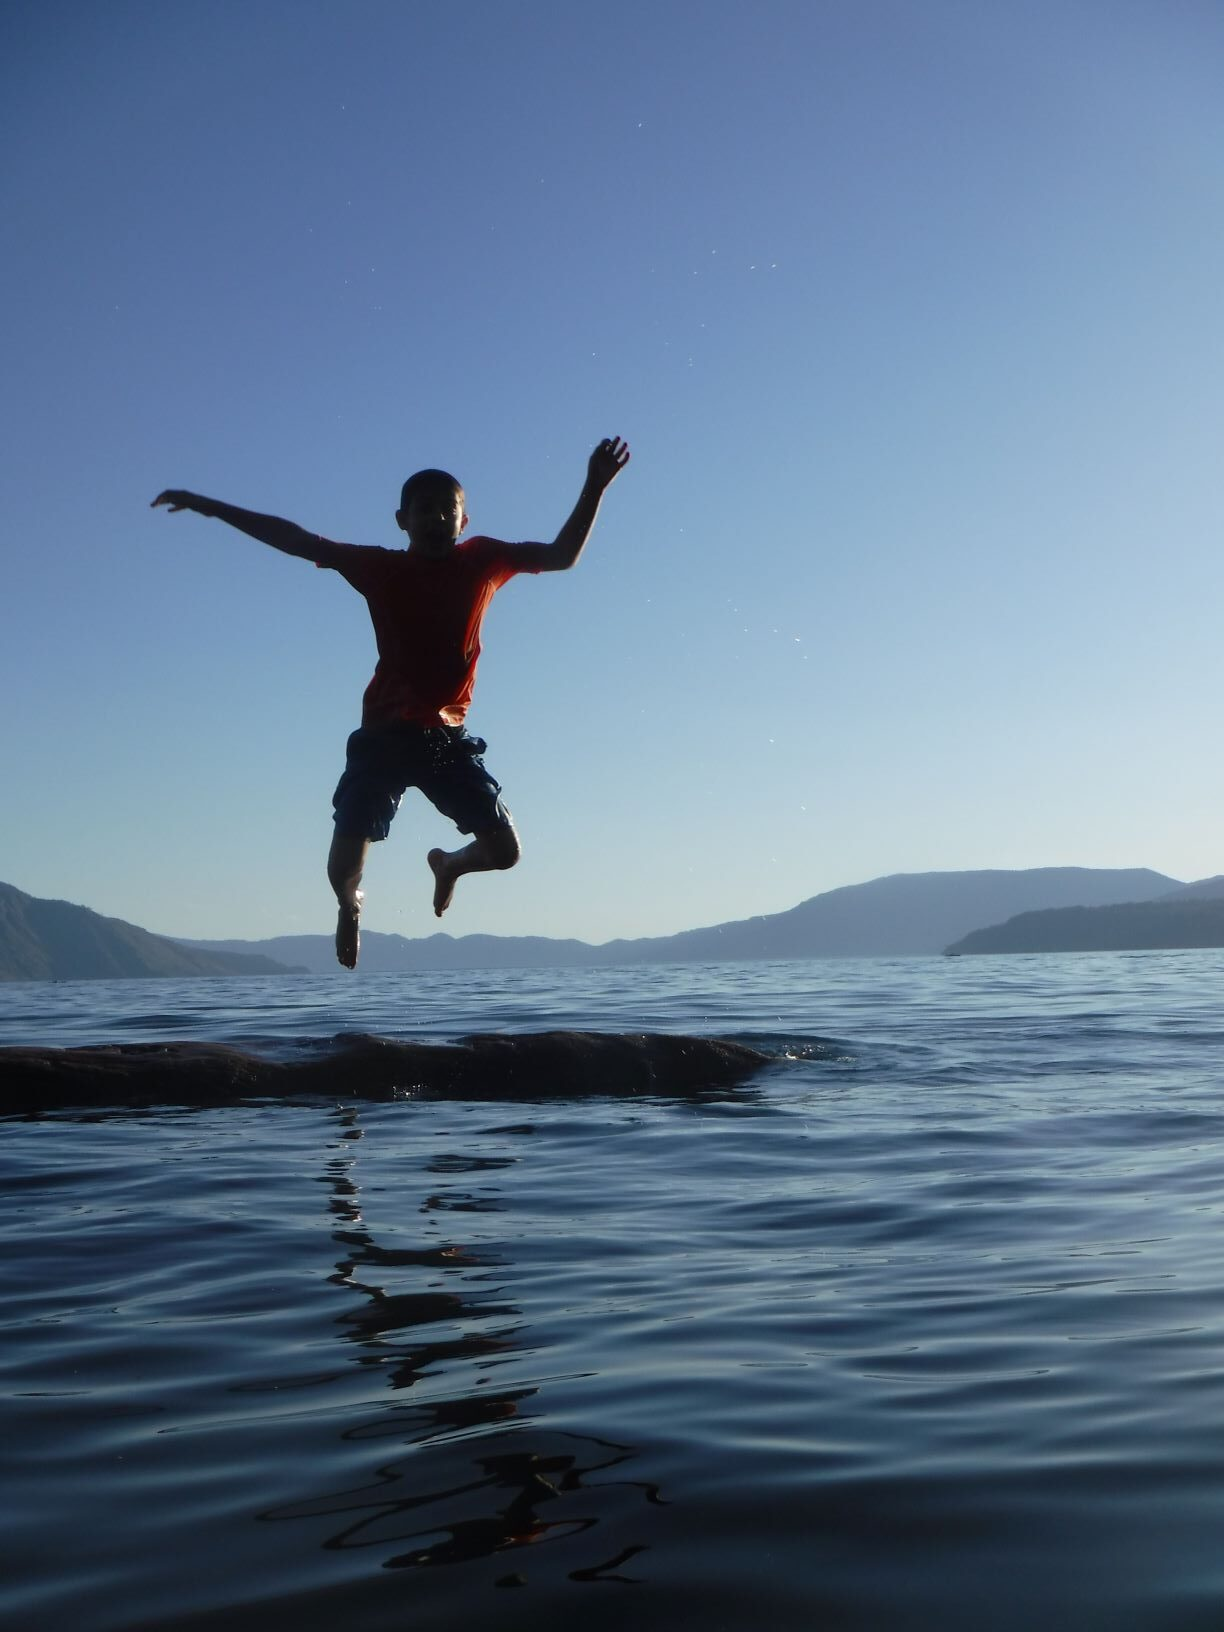 A boy jumping off a log floating in Lake Pend Oreille, with a view of hills in the far background.